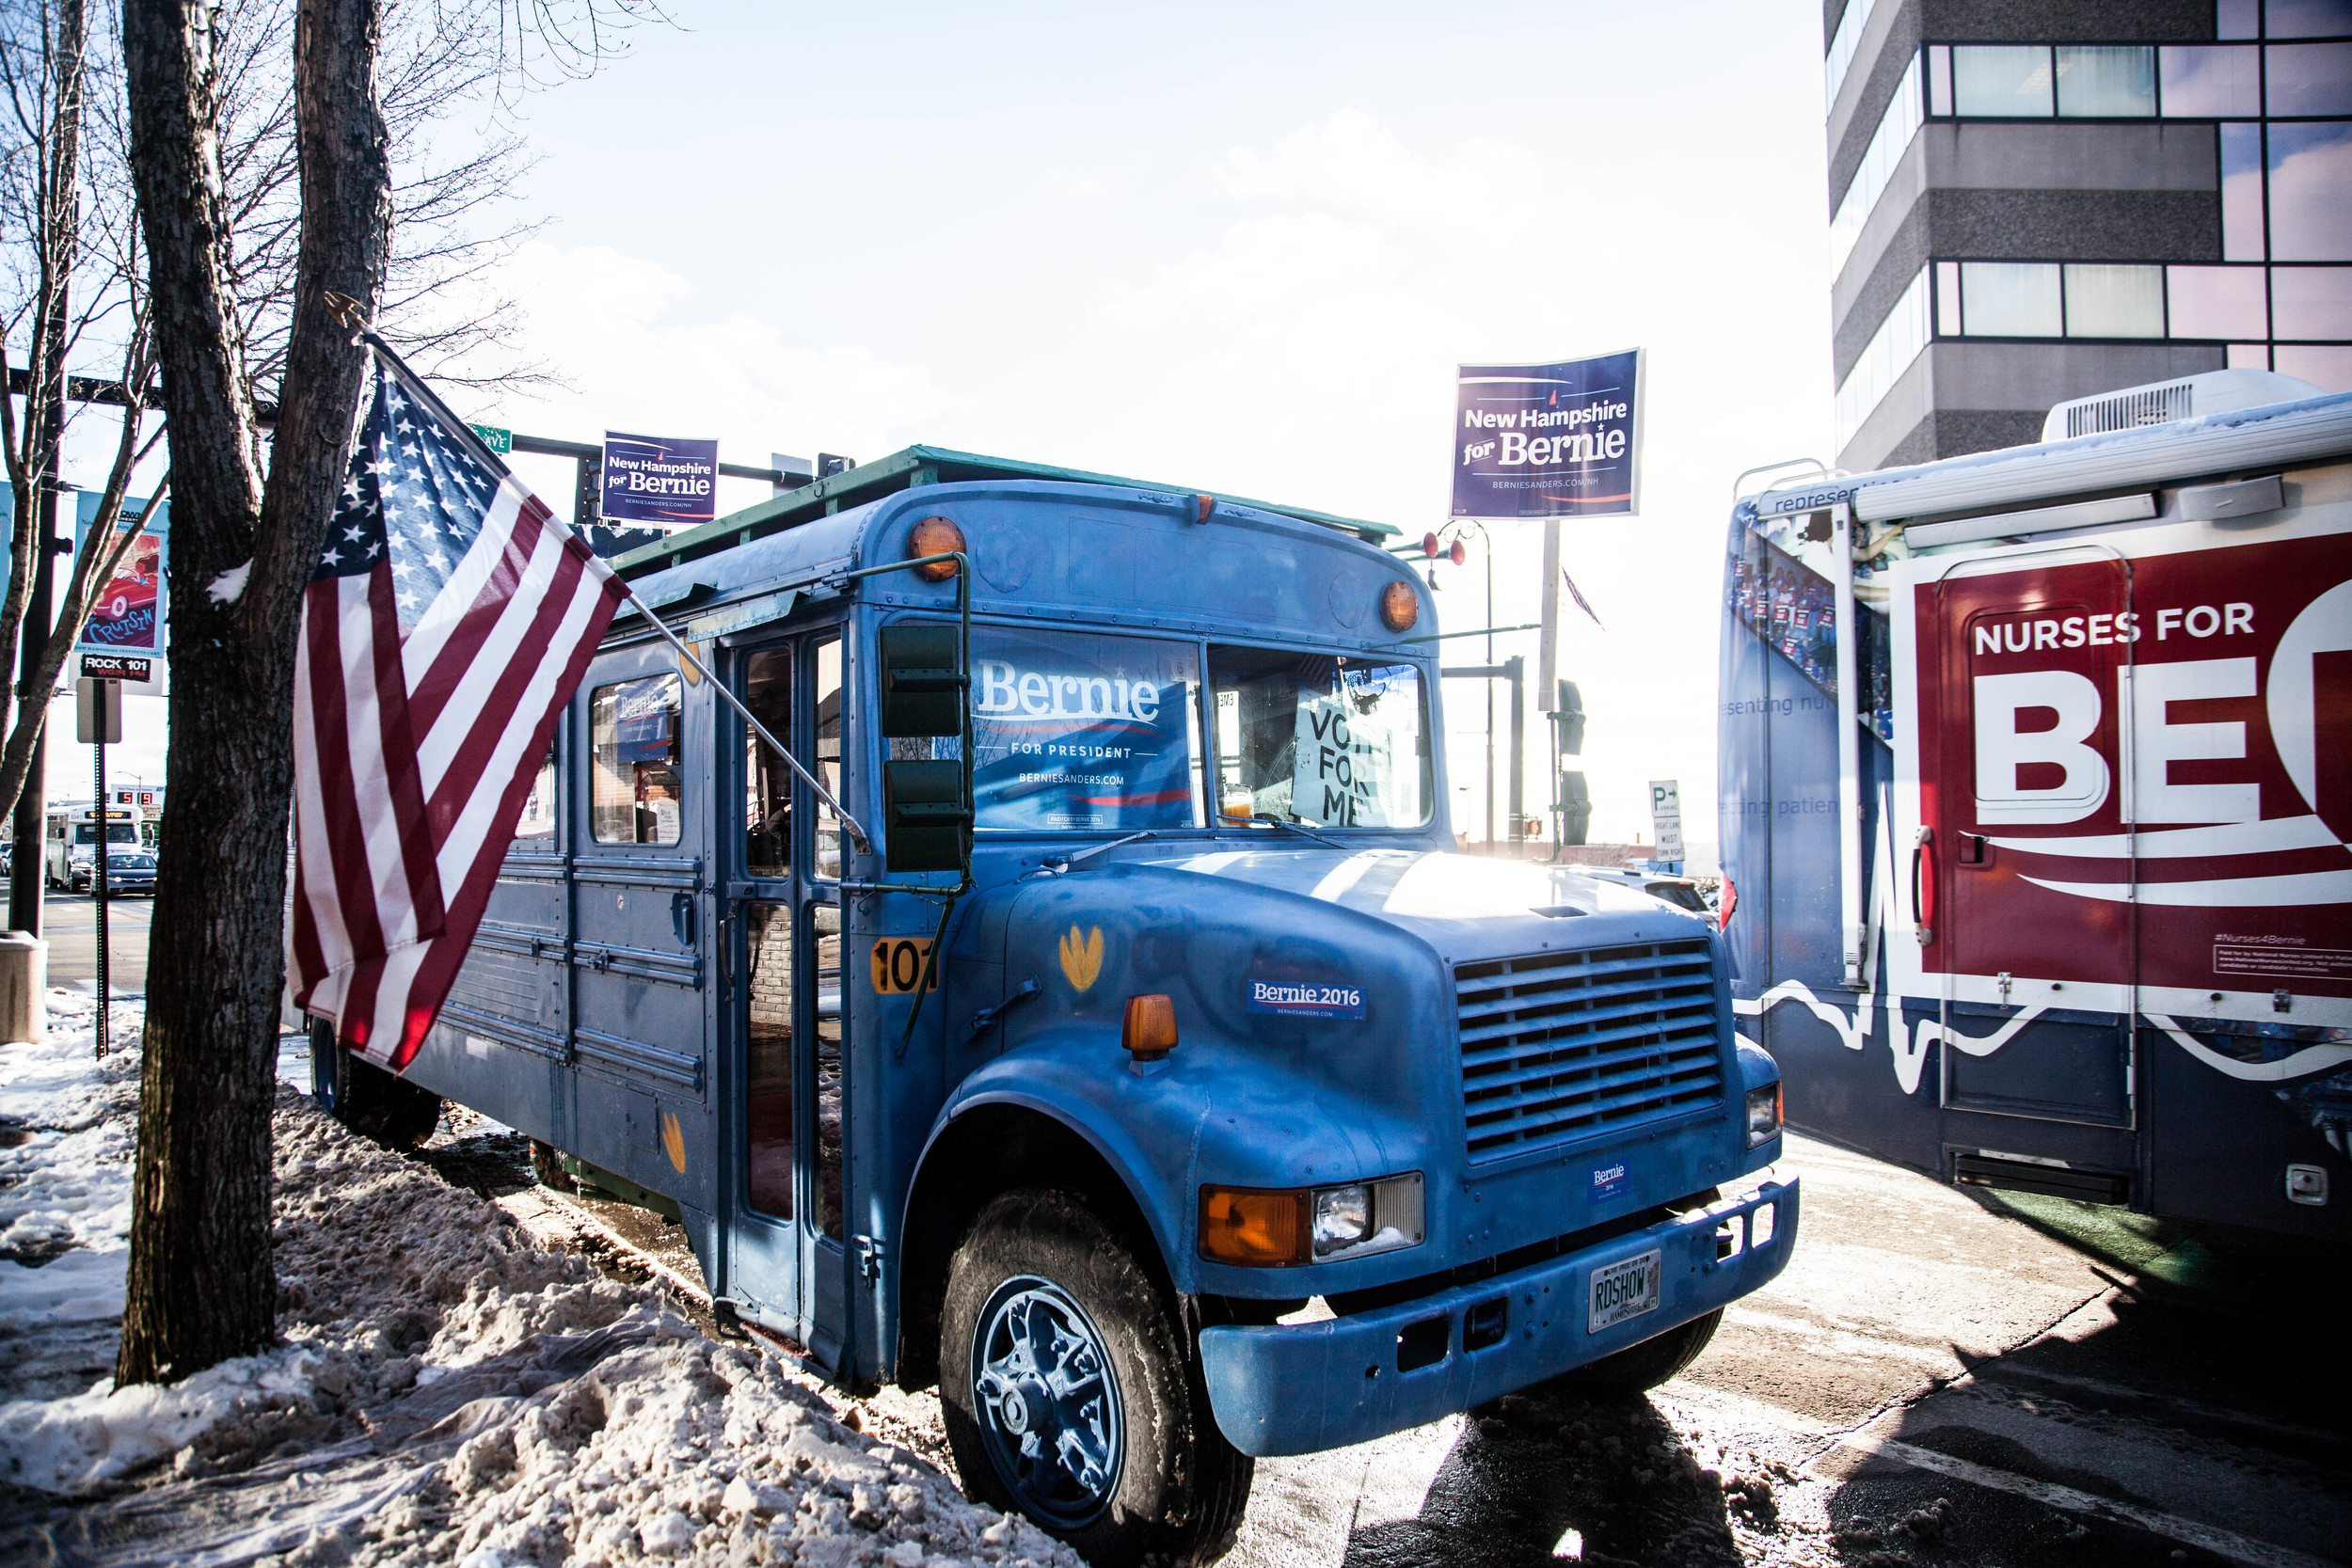 """Manchester, NH,Feb. 9, 2016 - A """"Nurses for Bernie Sanders"""" bus drives past another bus in support of Bernie Sanders parked on Elm Street. Photo by Alexandra Wimley"""